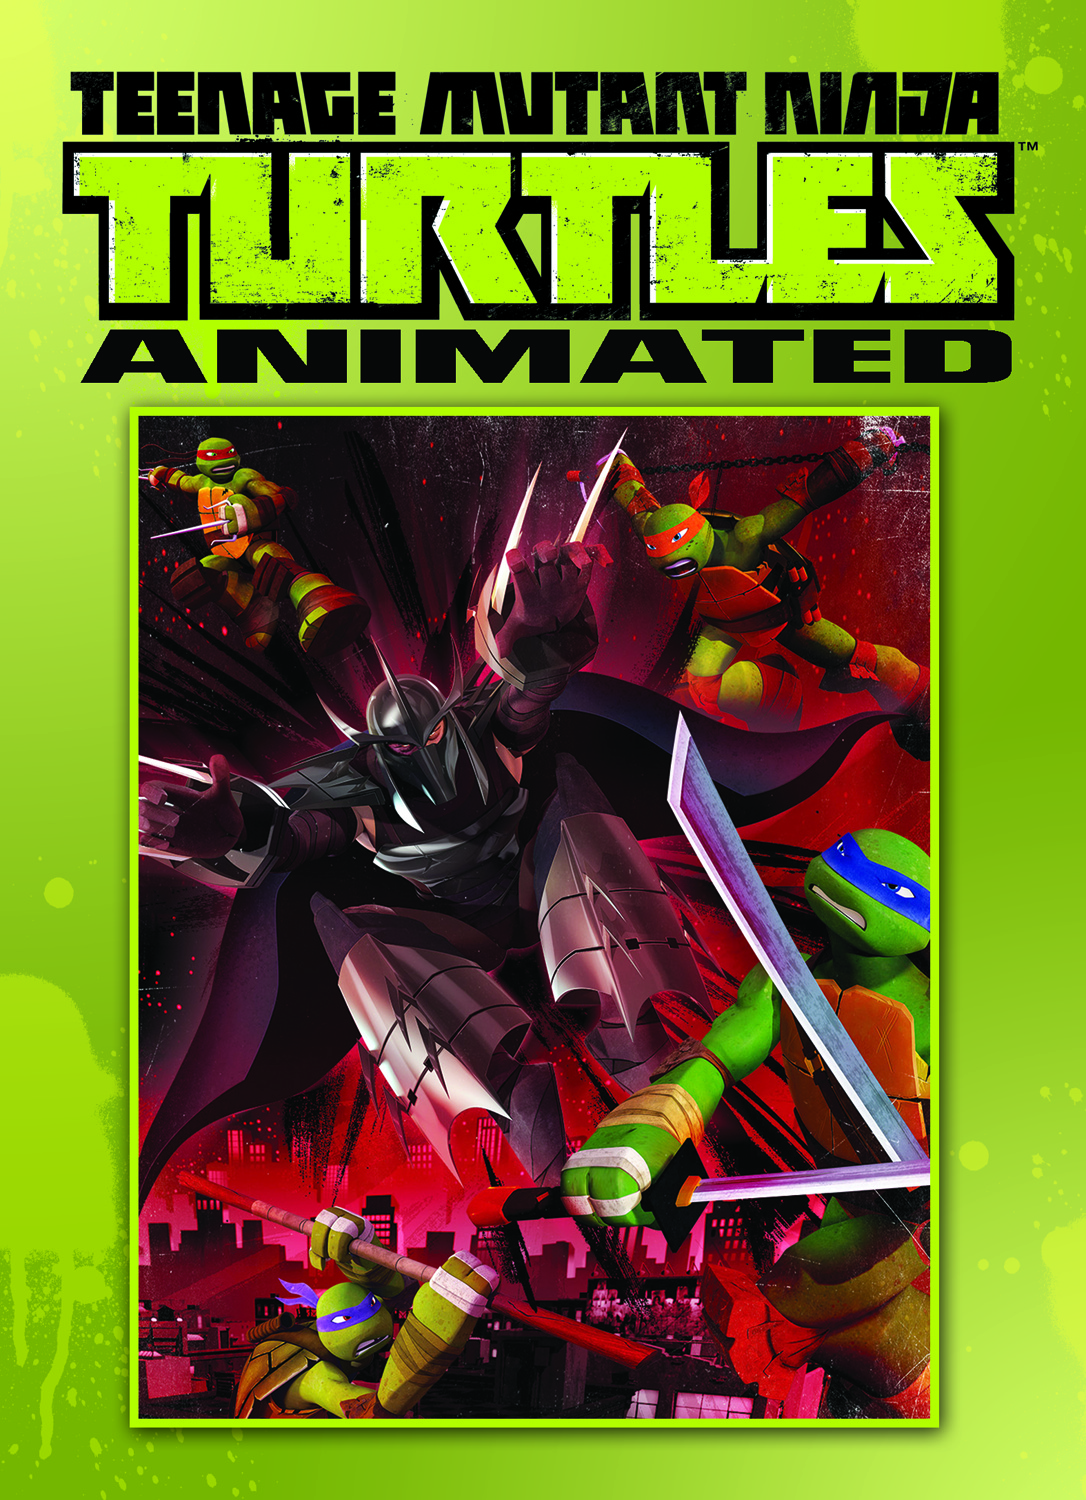 TMNT Animated Volume 1